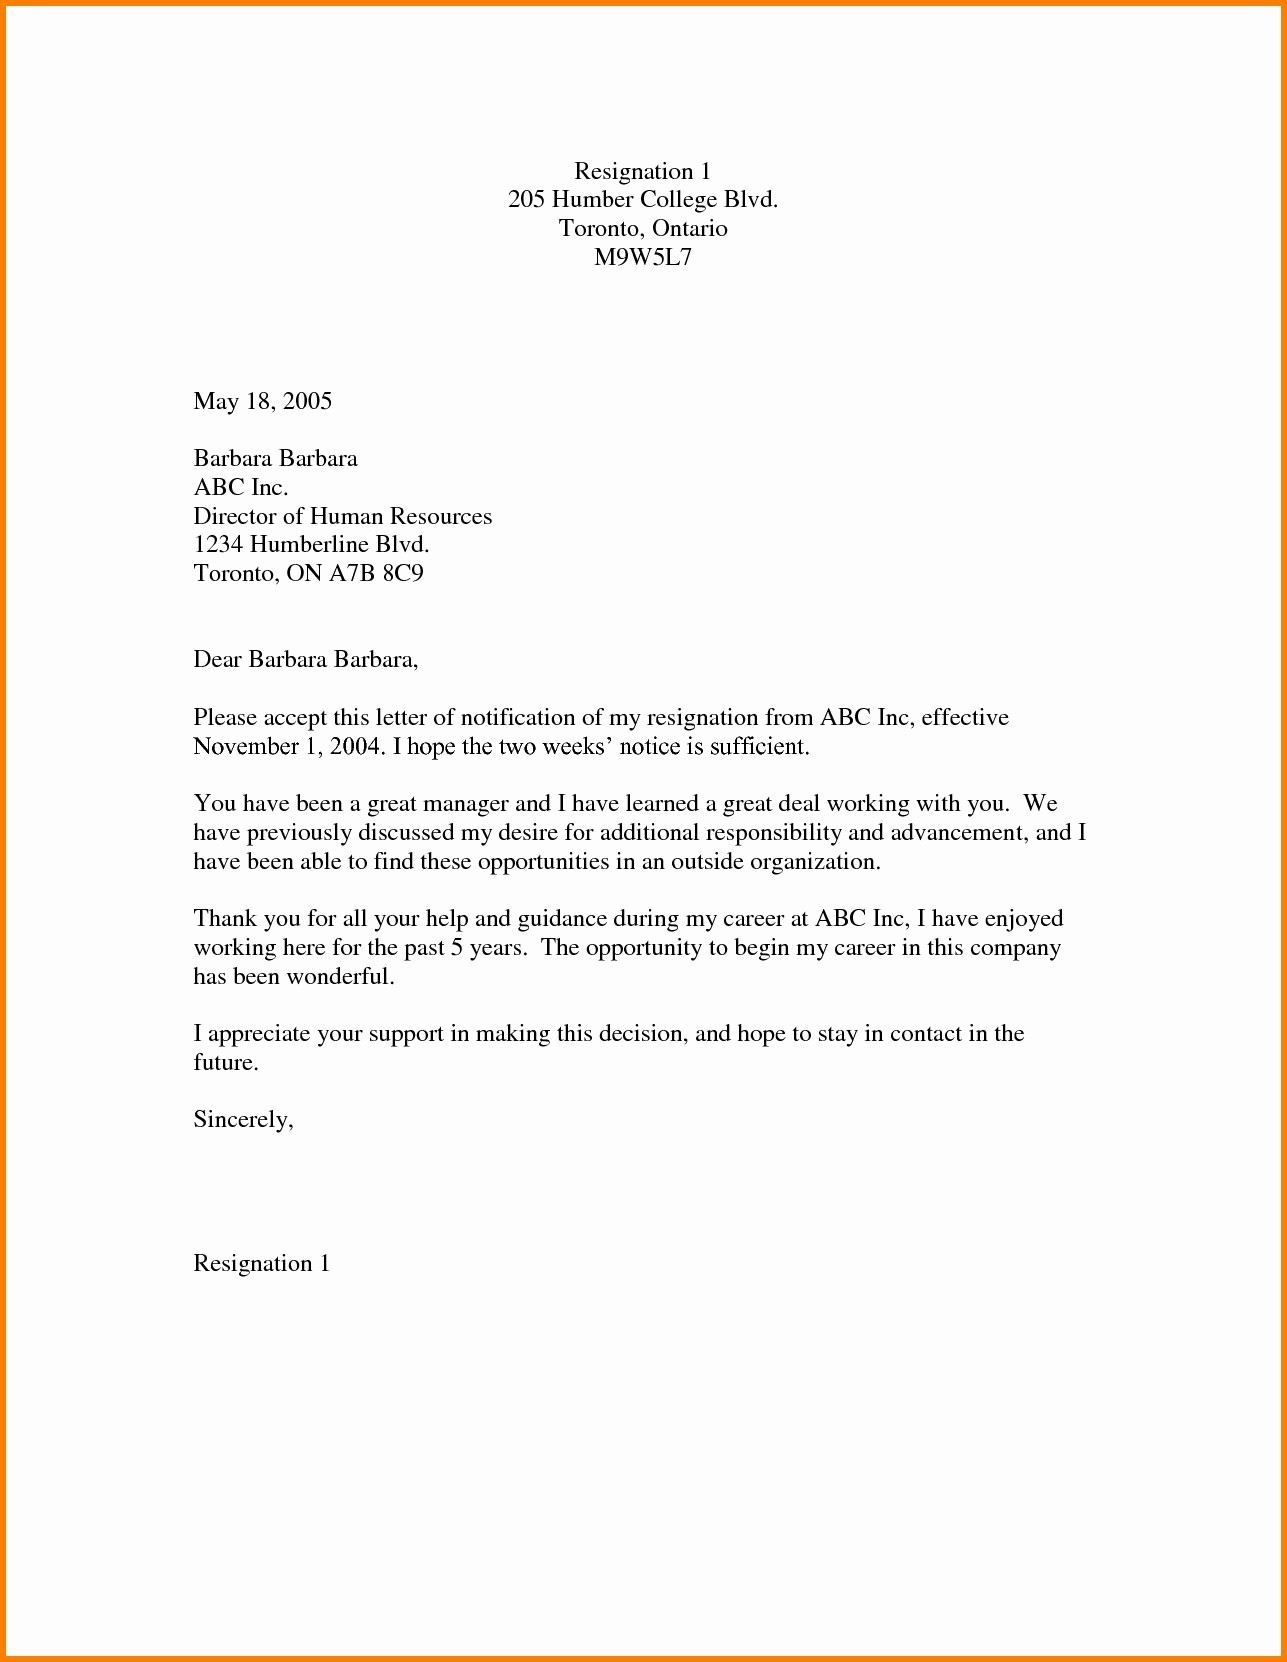 Notice Letter Template - Luxury Practice Writing Letters Template